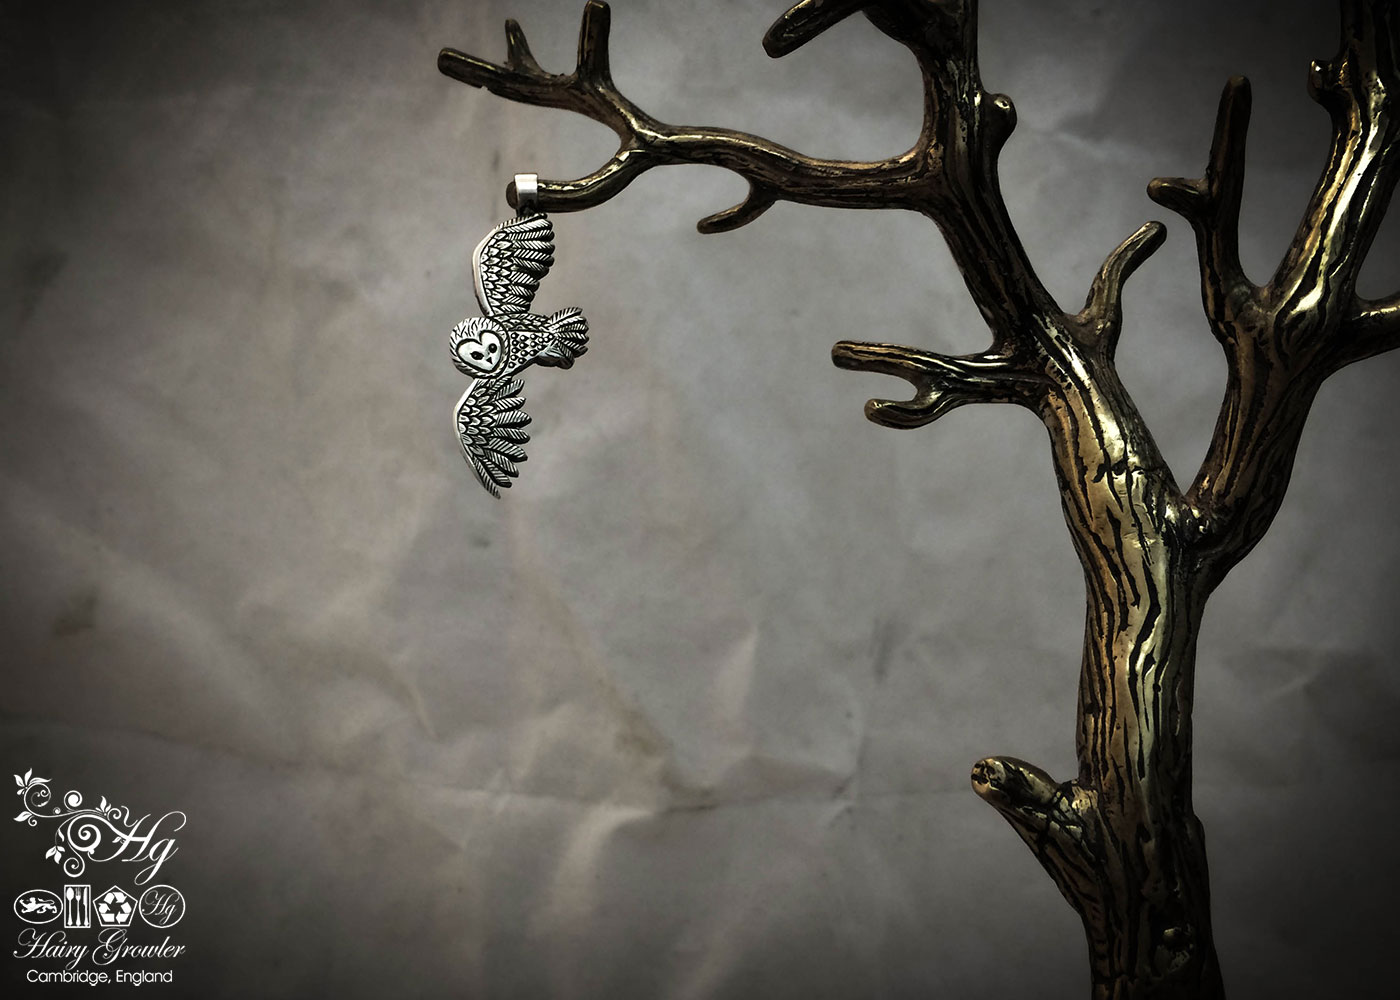 handmade and recycled silver coins flying playful owl charm for a tree sculpture, necklace or bracelet